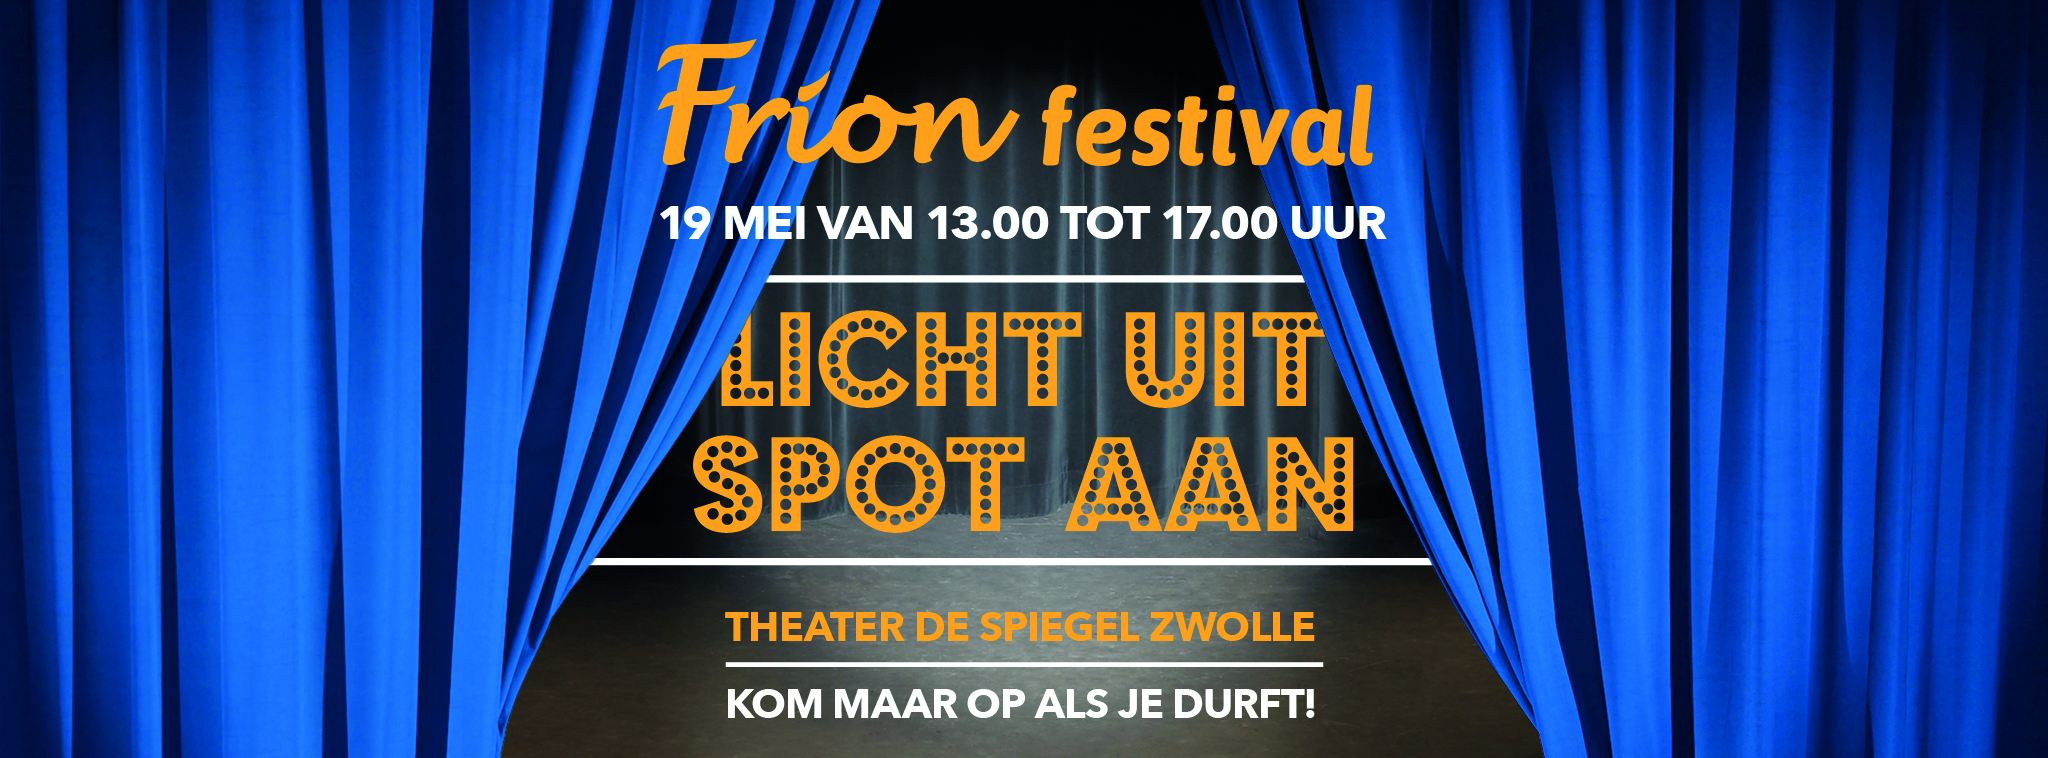 180274_VRIENDEN VAN FRION_FESTIVAL 2019_HEADER_WEBSITE